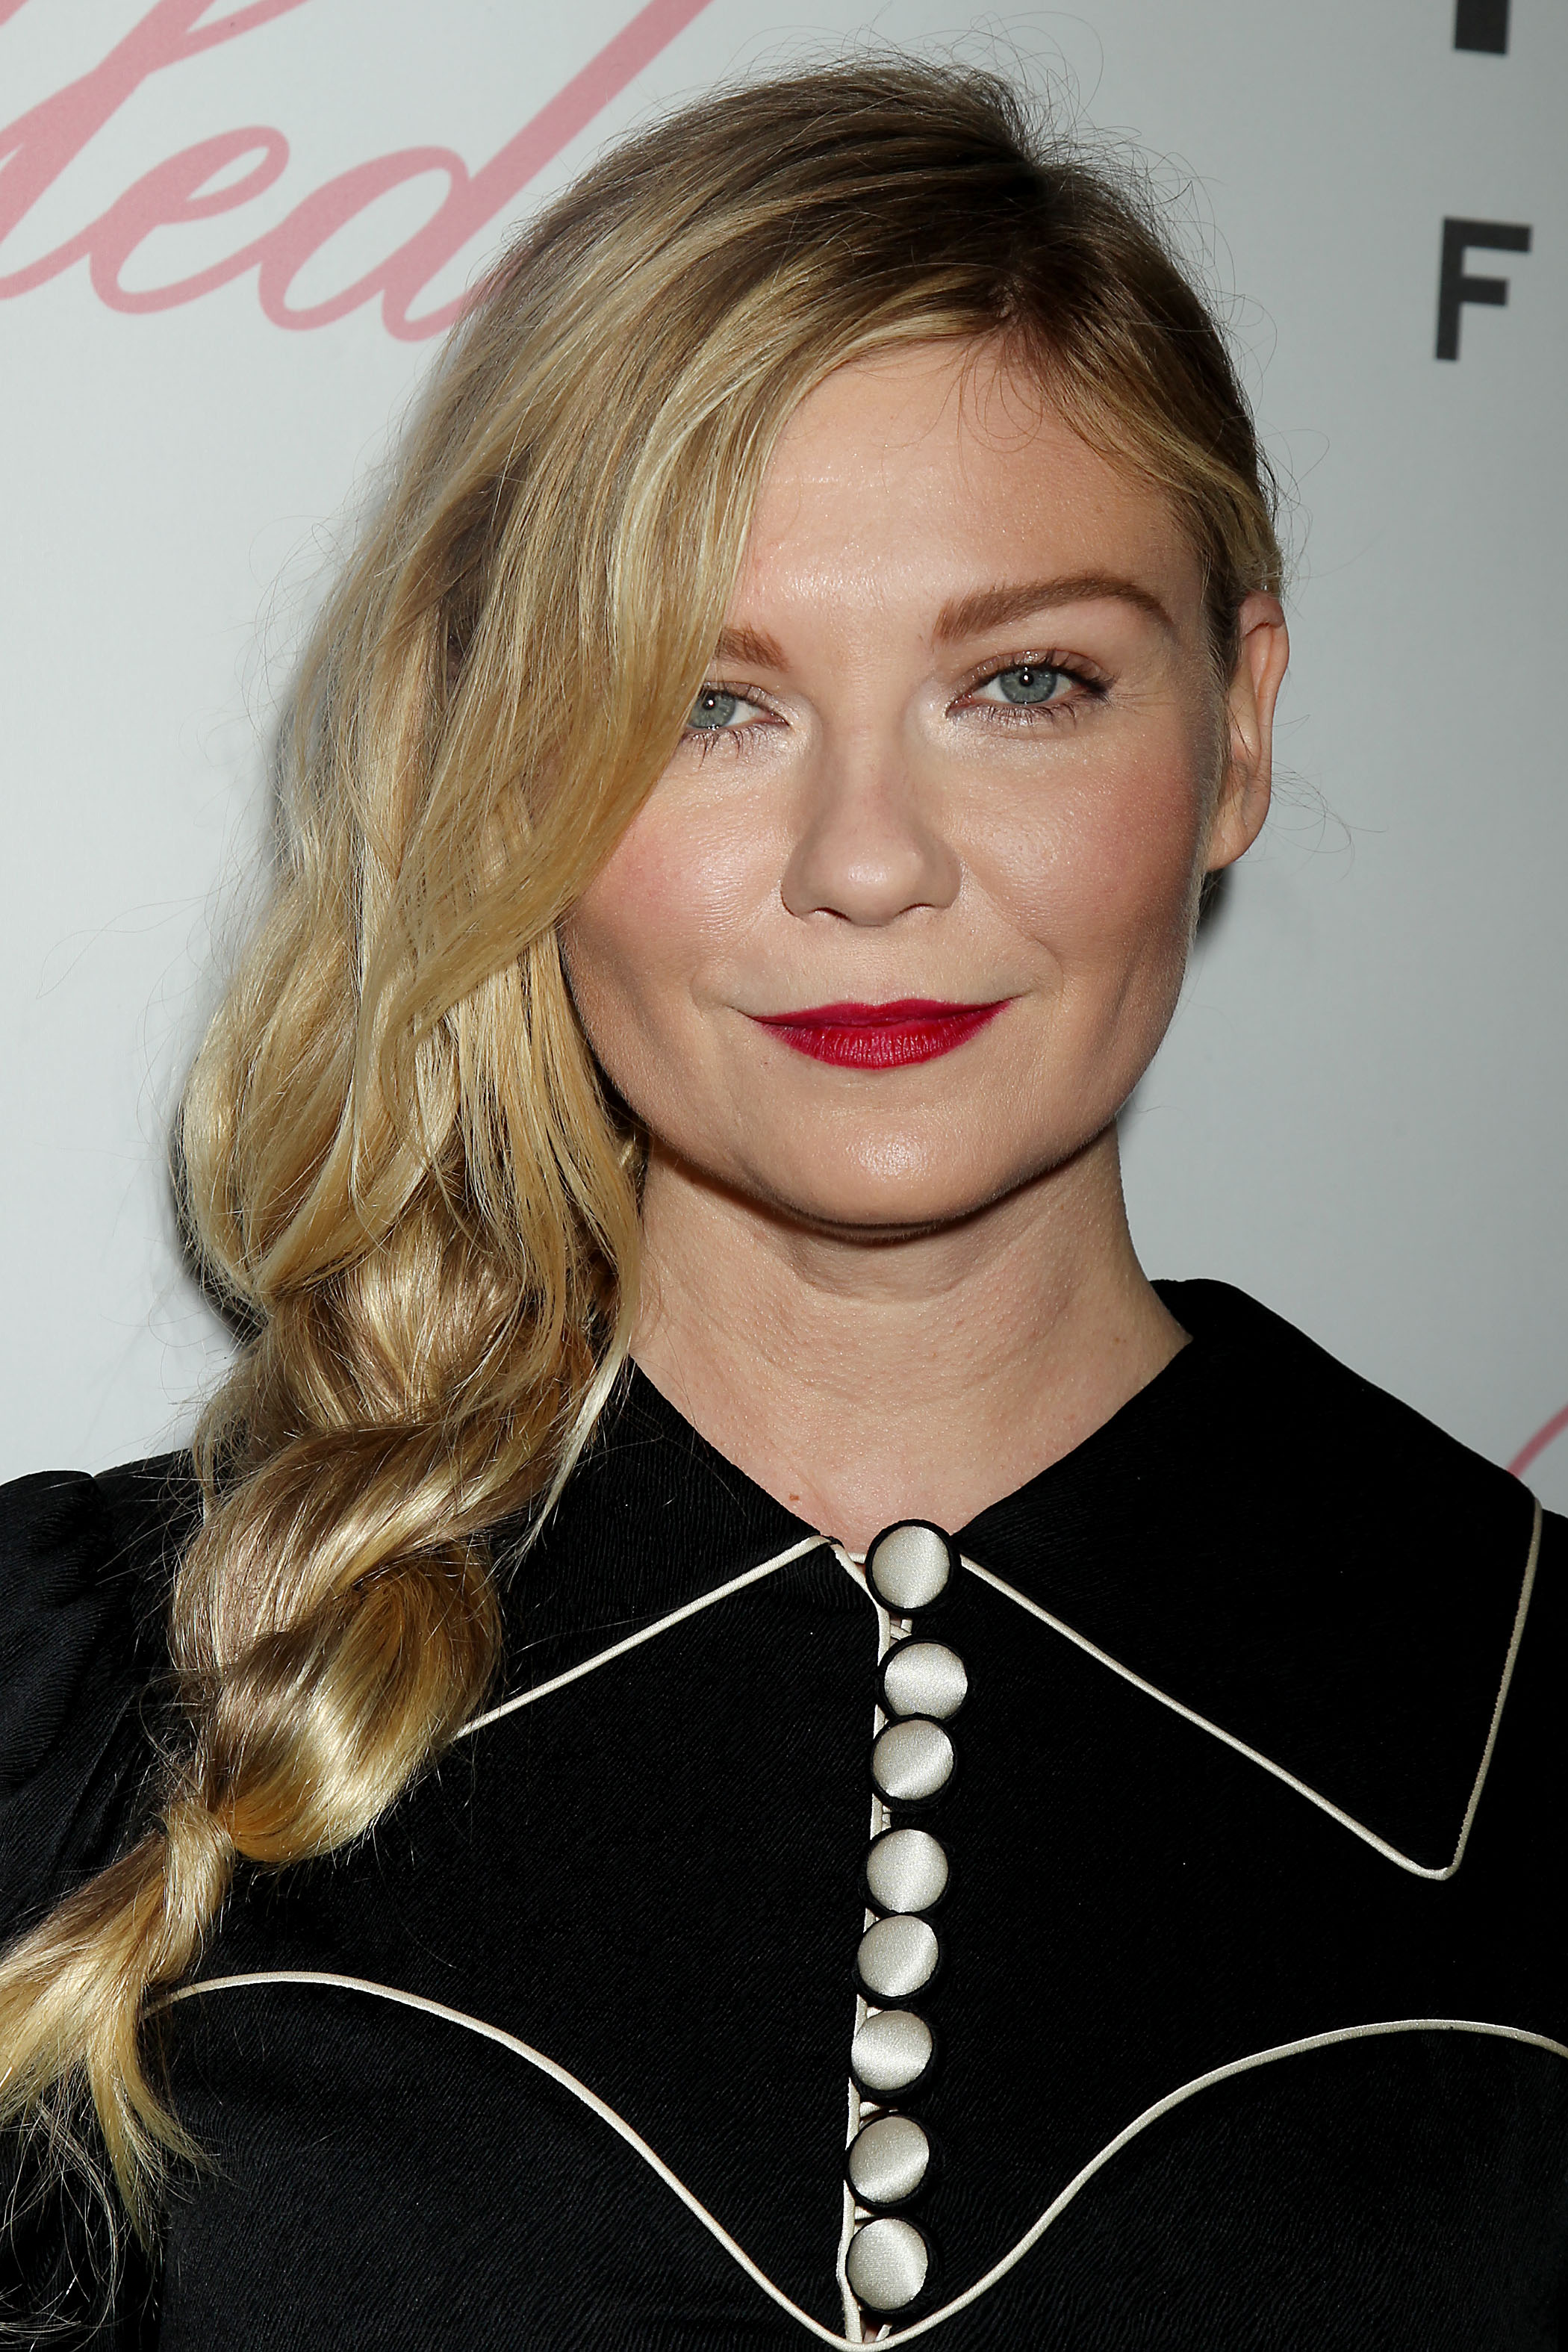 Easy hairstyles for fine hair: Kirsten Dunst with long golden blonde hair styled in a side twisted braid wearing a navy collared top.